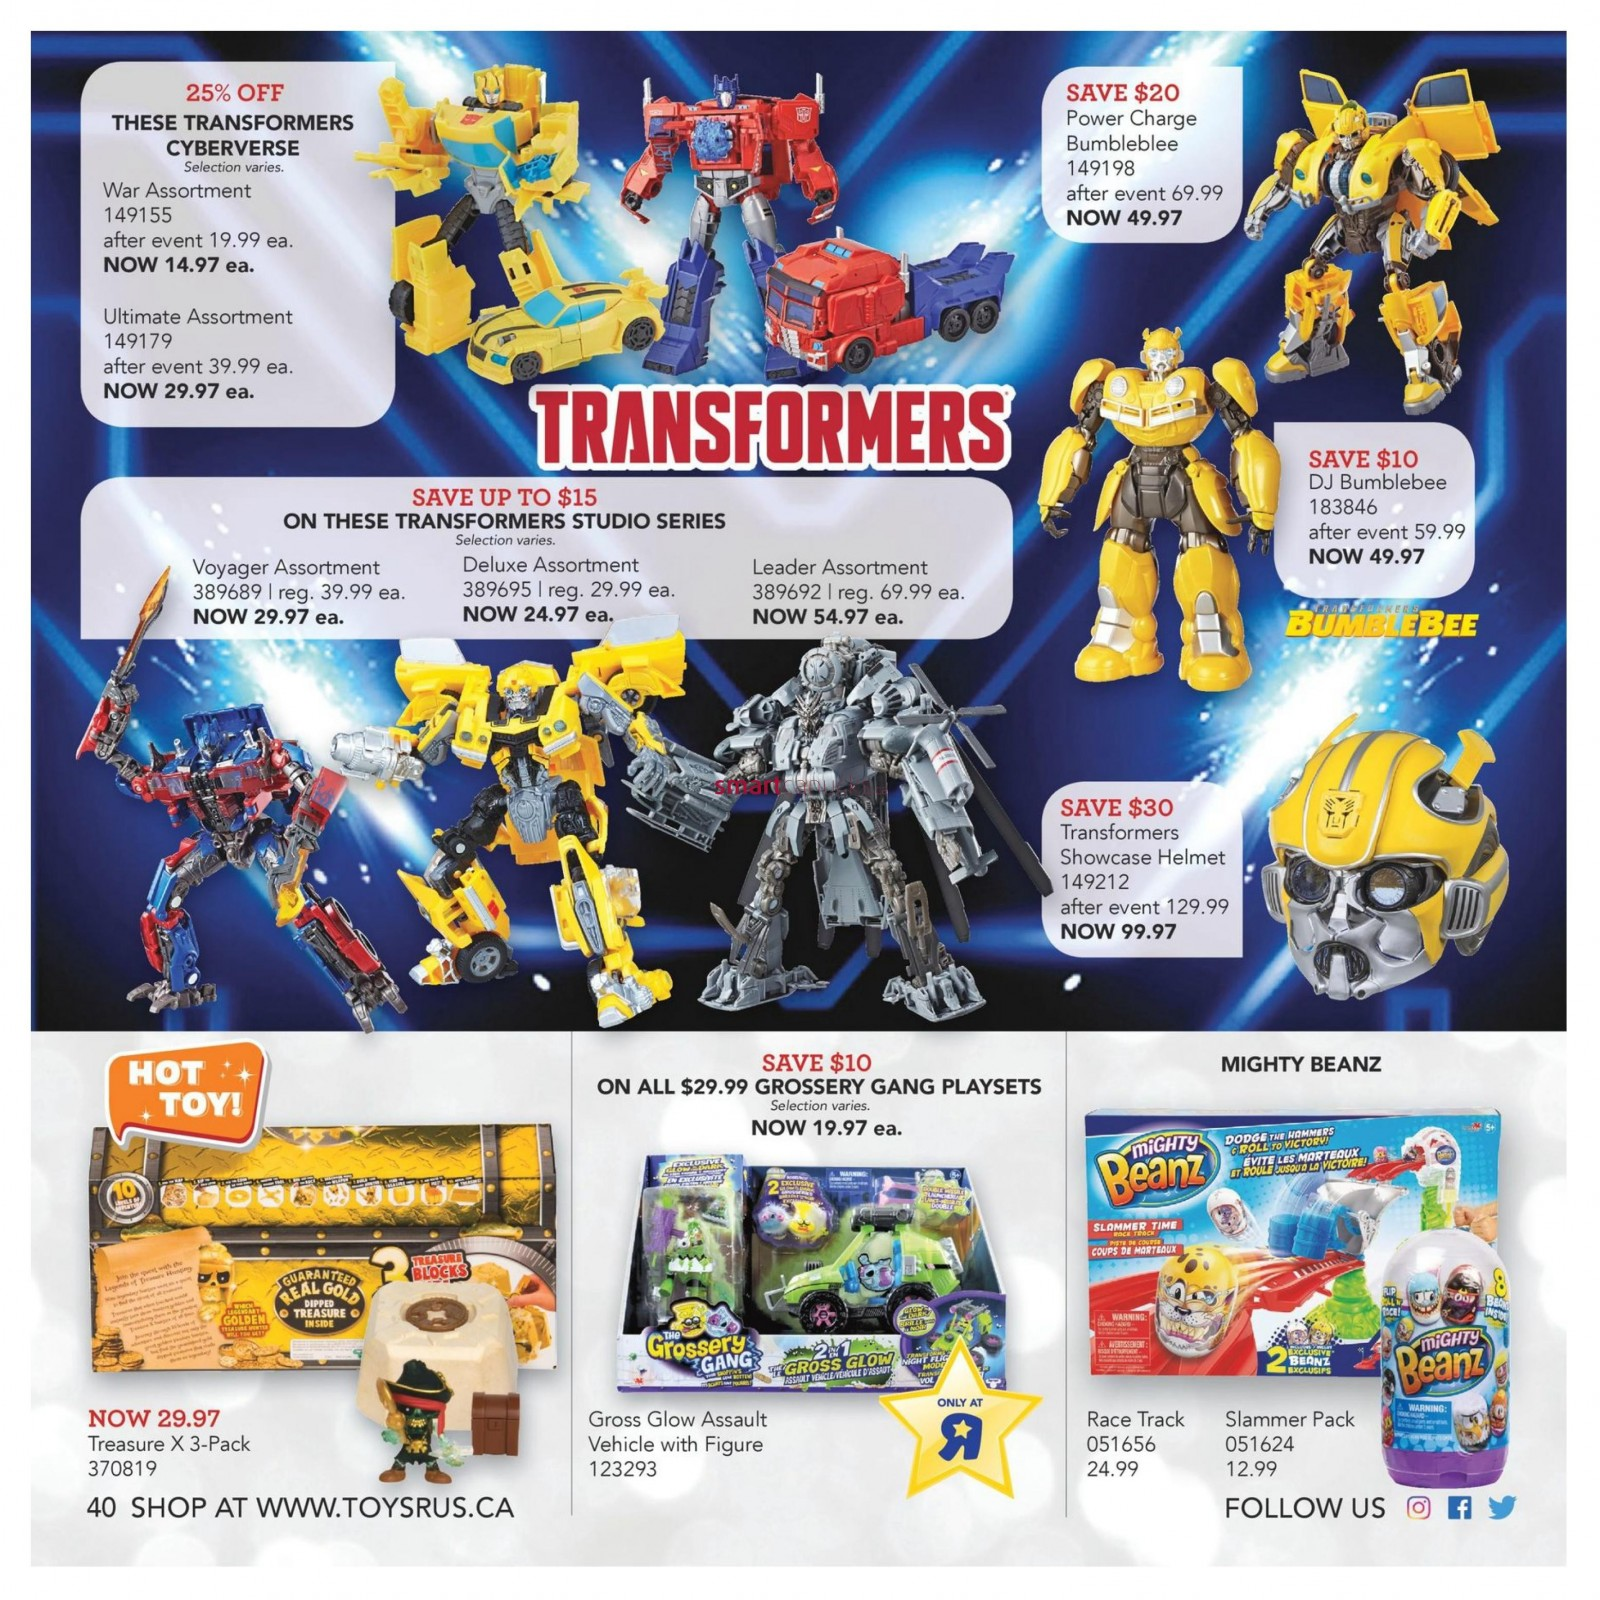 Transformers News: 2018 Toysrus Canada Holiday Catalogue Heavily Features Bumblebee with Discounts and Events